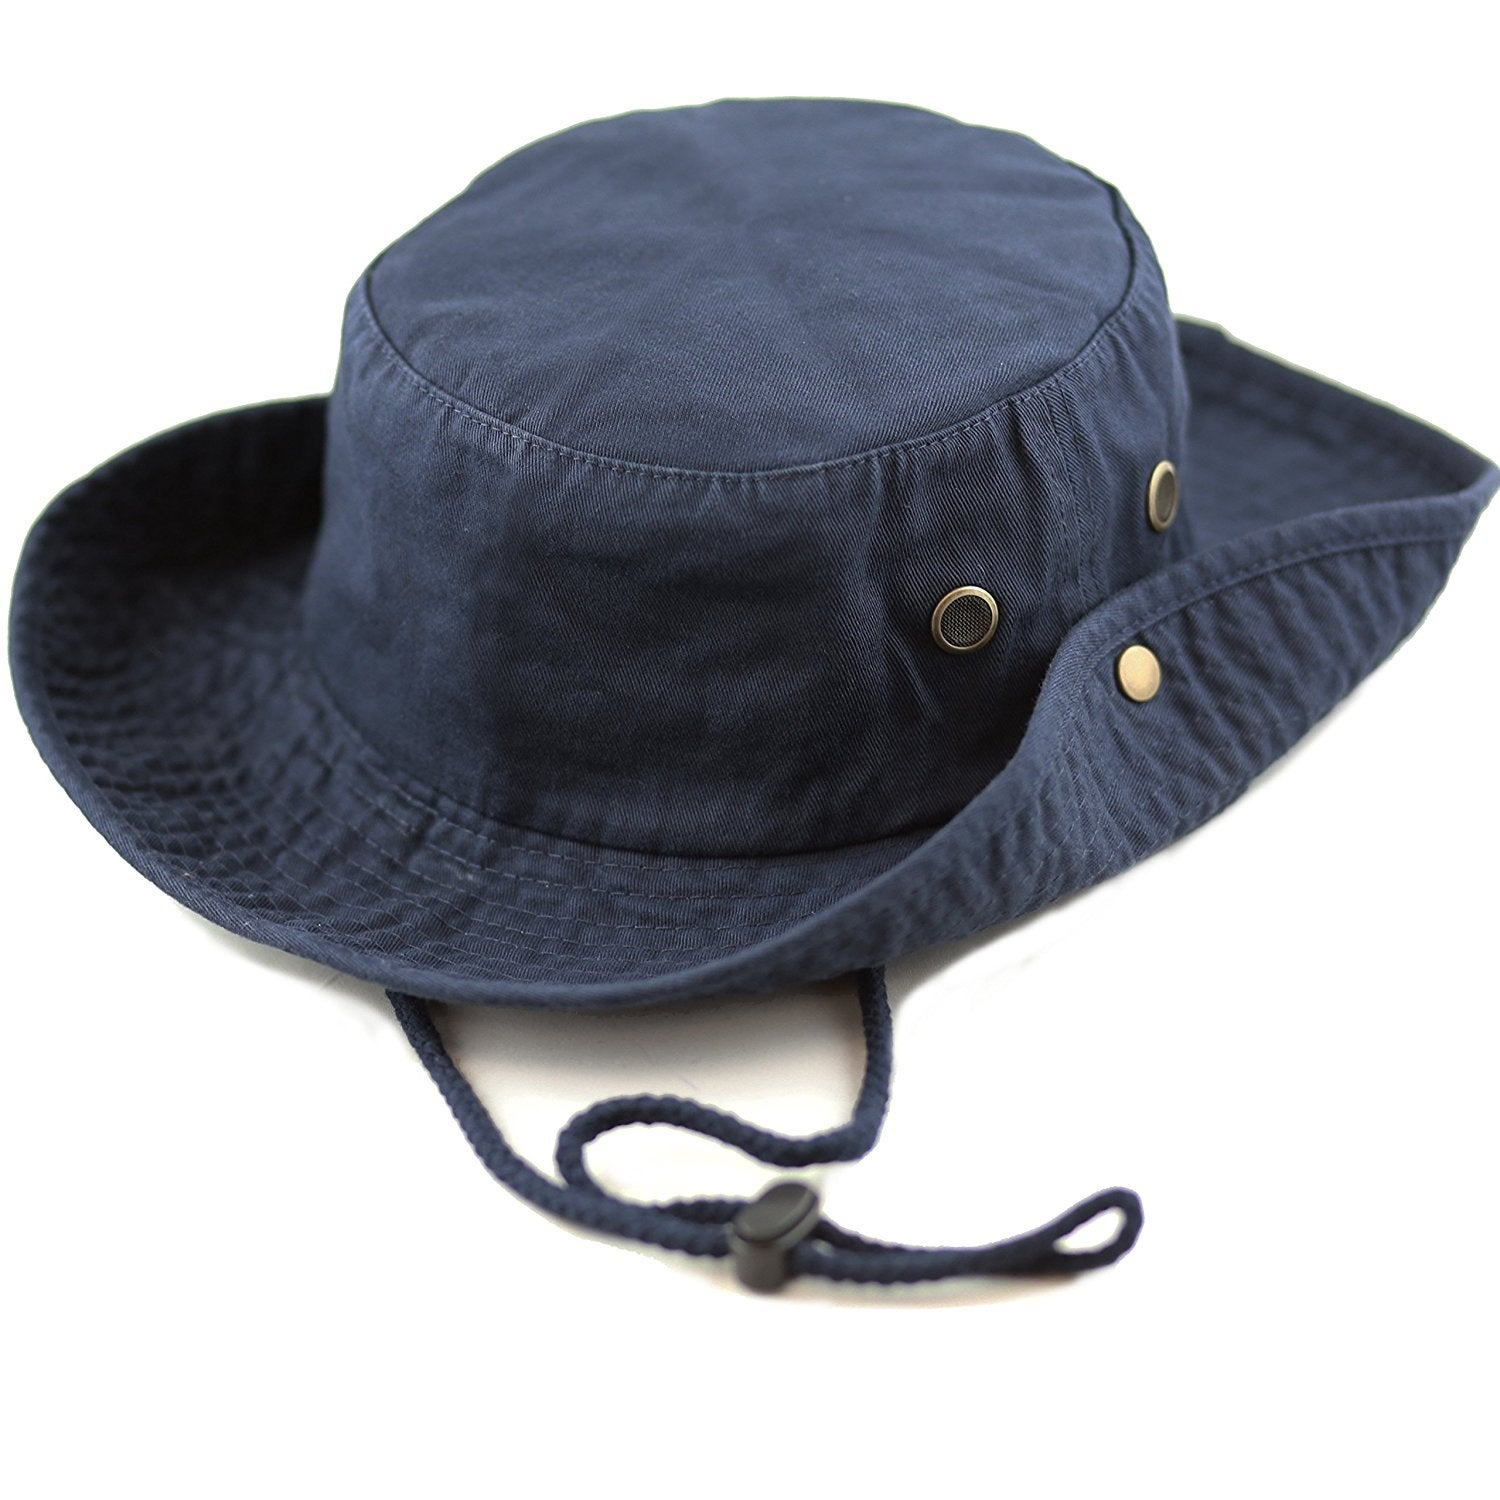 f1652aa1b3b Shop Men Women Boonie hat Cotton Wide Brim Foldable Double-Sided Outdoor -  On Sale - Free Shipping On Orders Over  45 - Overstock - 22120775